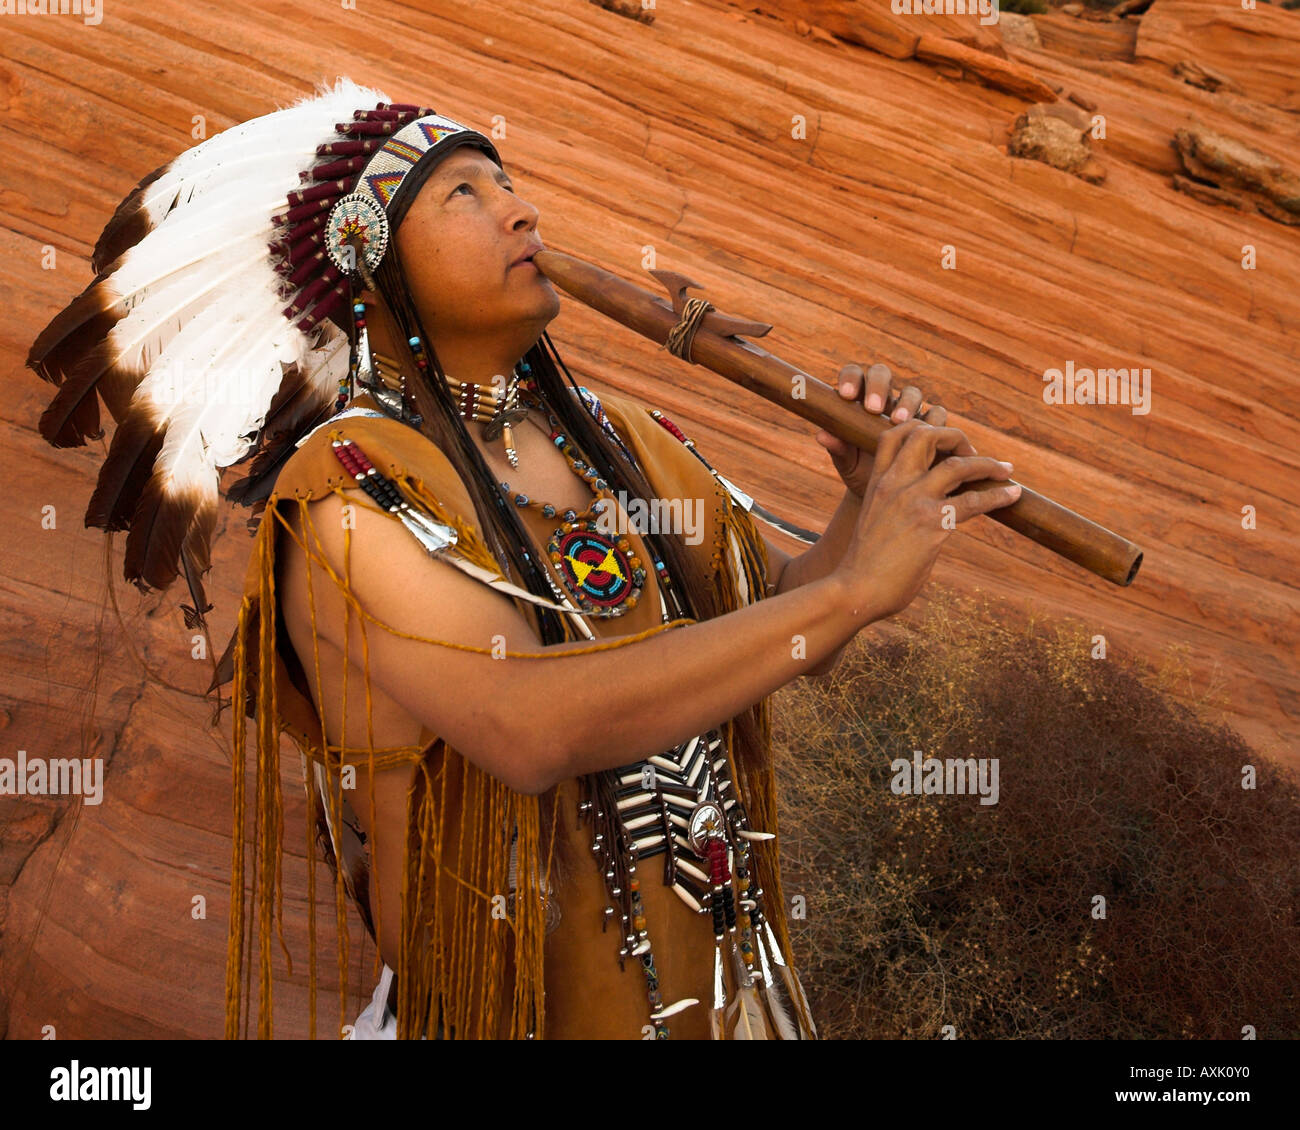 Native American Indian man person with cultural outfit uniform headdress feathers playing music instrument horn whistle - Stock Image